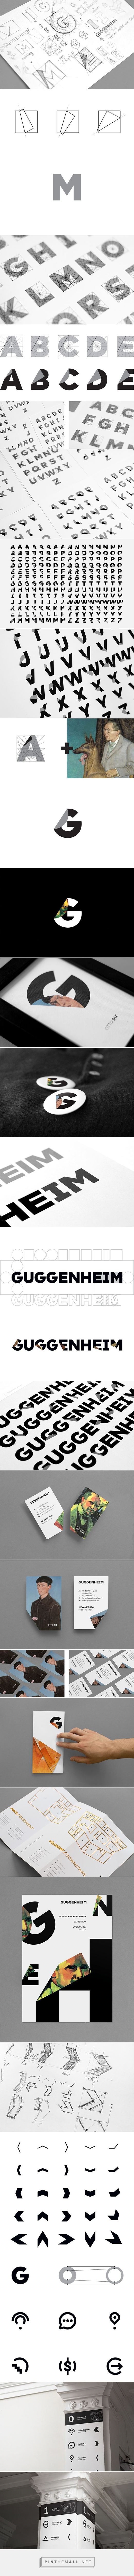 The Hungarian Guggenheim on Behance - created via https://pinthemall.net